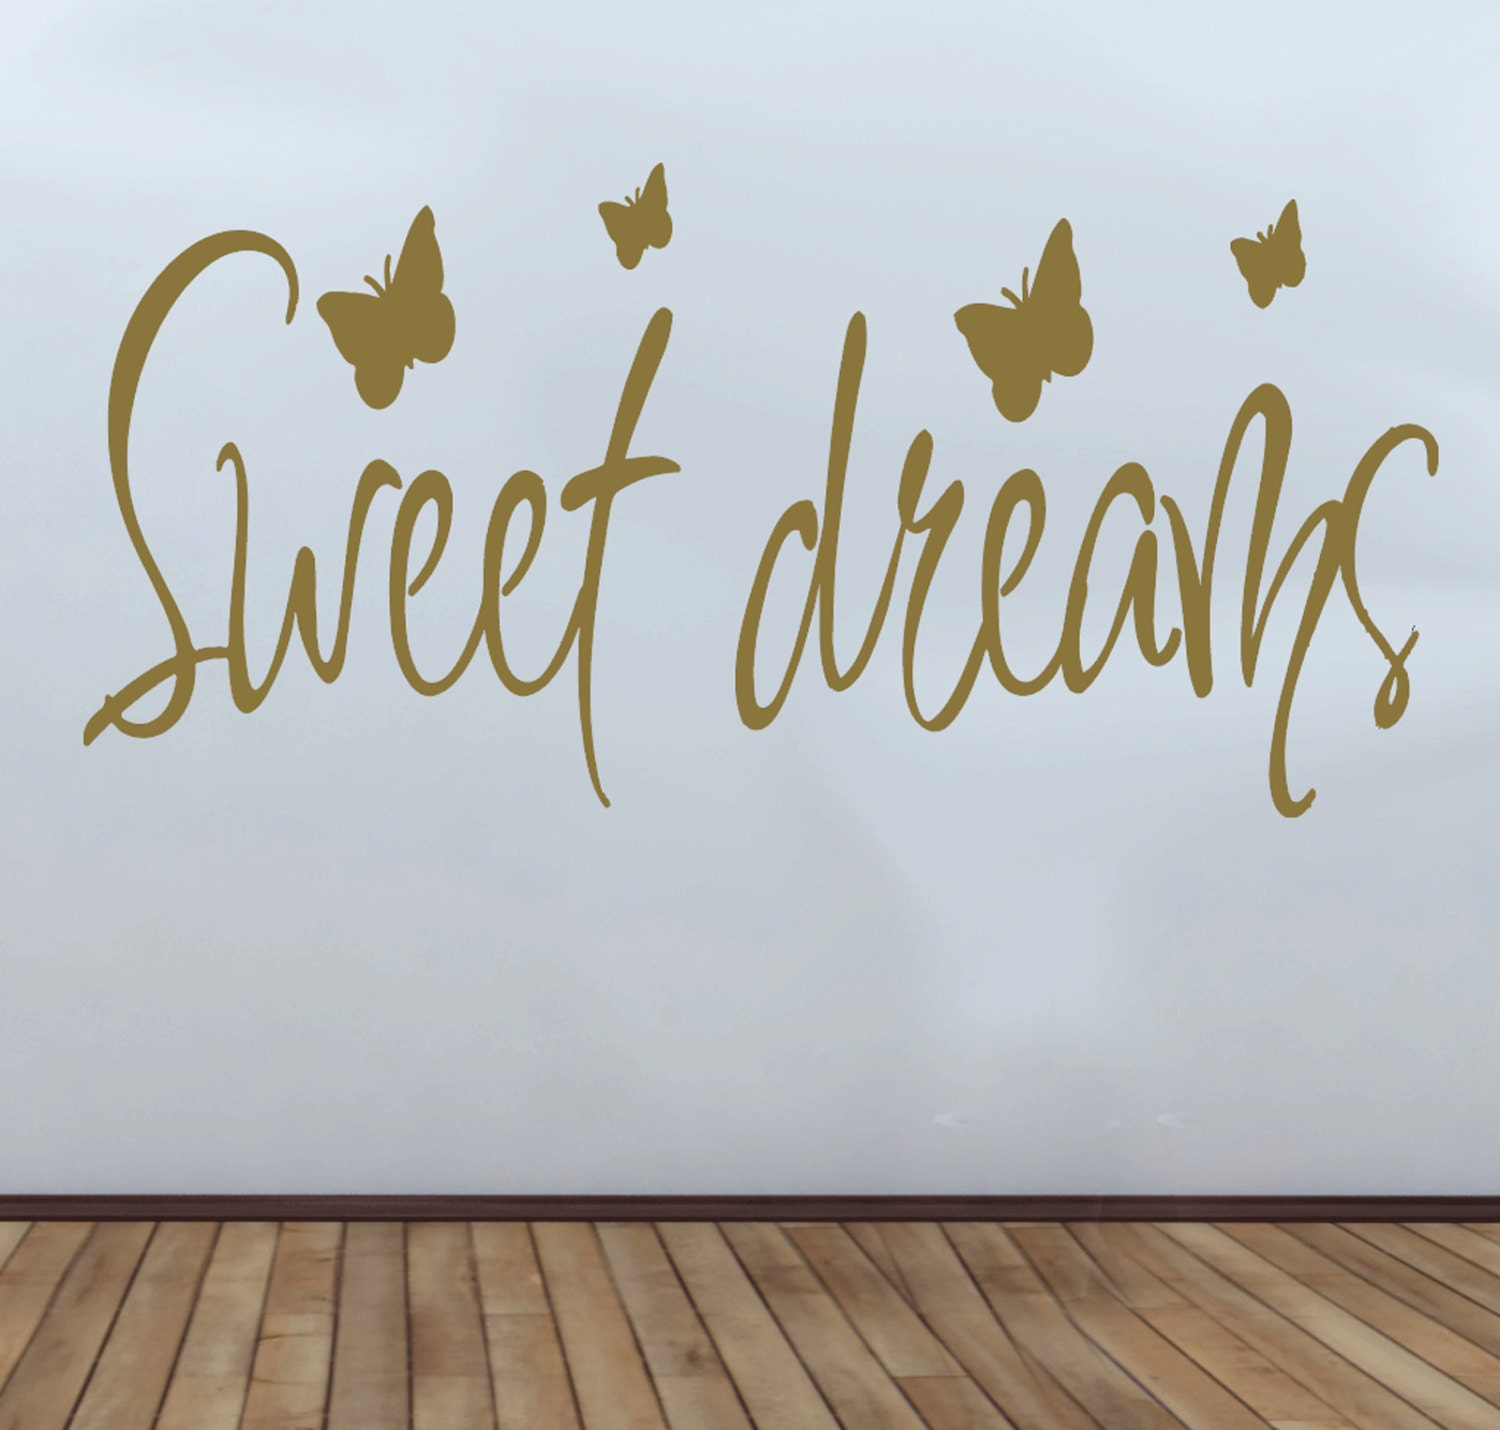 Sweet Dreams And Butterflys Bedroom Quote Wall Art Vinyl Decal Sticker